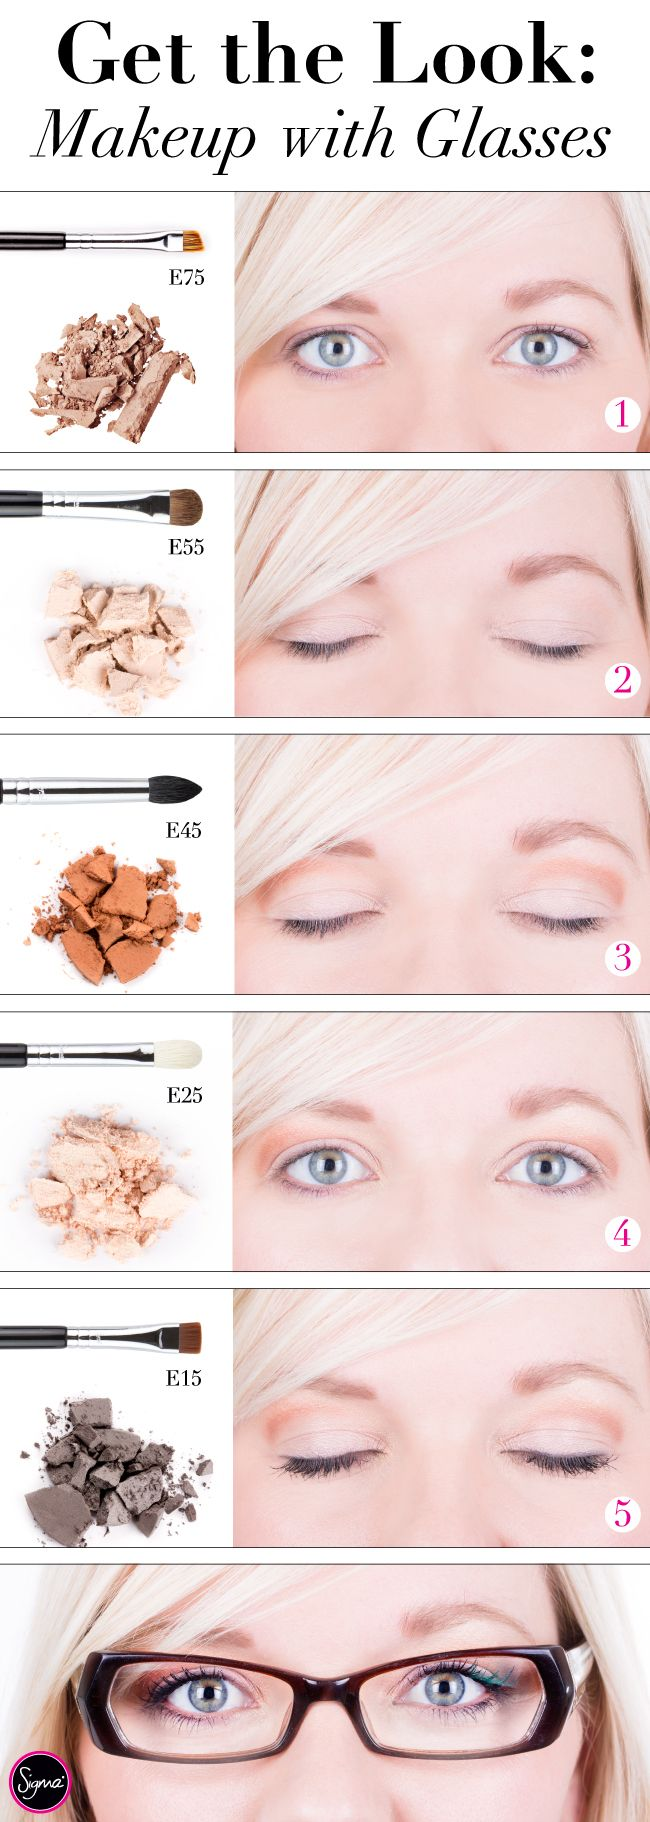 How To Apply Makeup When You Wear Glasses; Beauty Hacks, Tips And Tricks  For People With Lenses, Frames; Tutorials, Guide; Pictures, Photos